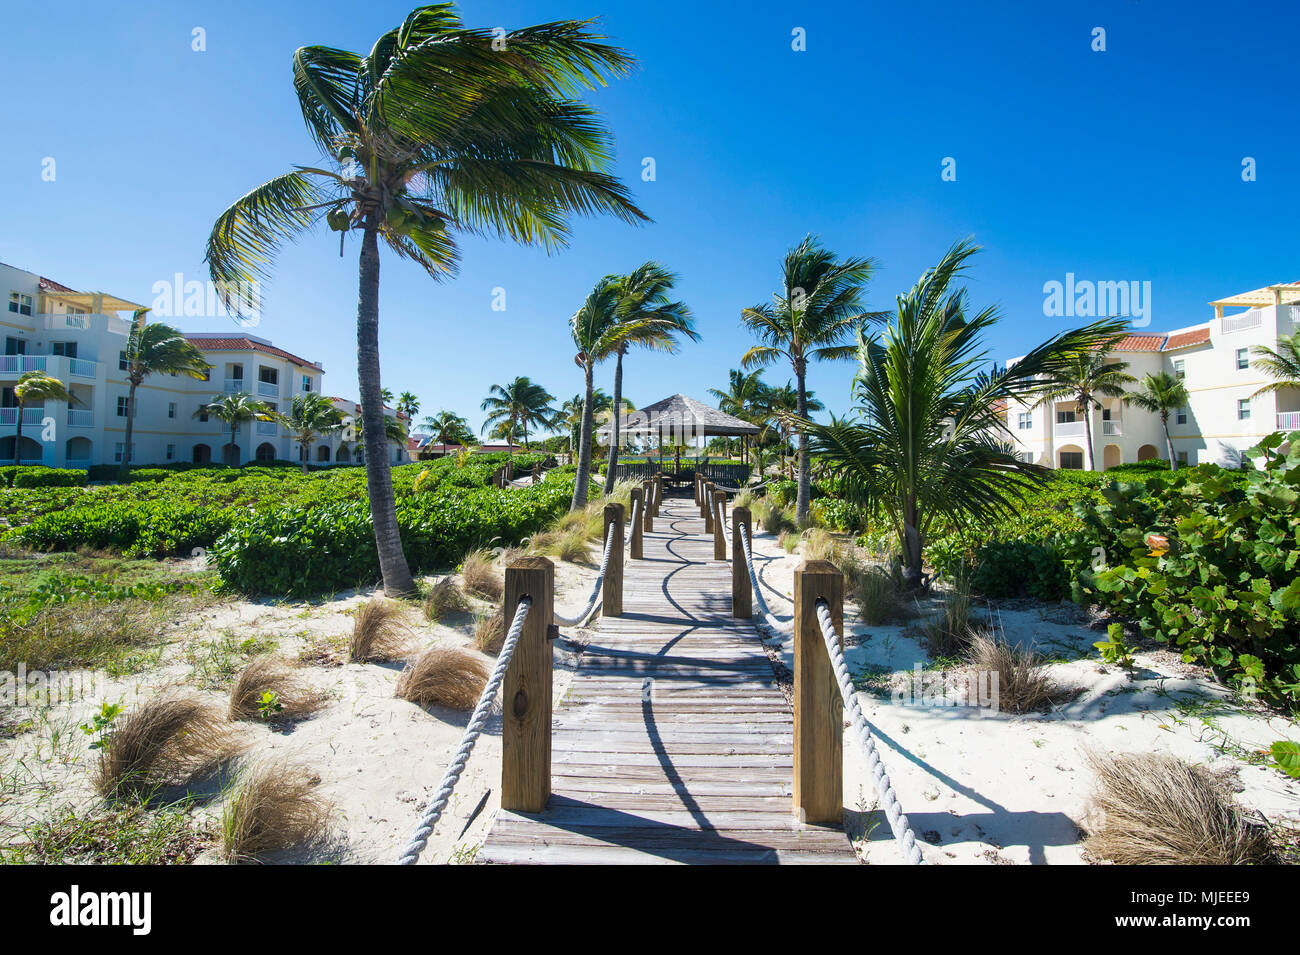 Wooden pathway leading to the turquoise waters of Providenciales, Turks and Caicos - Stock Image